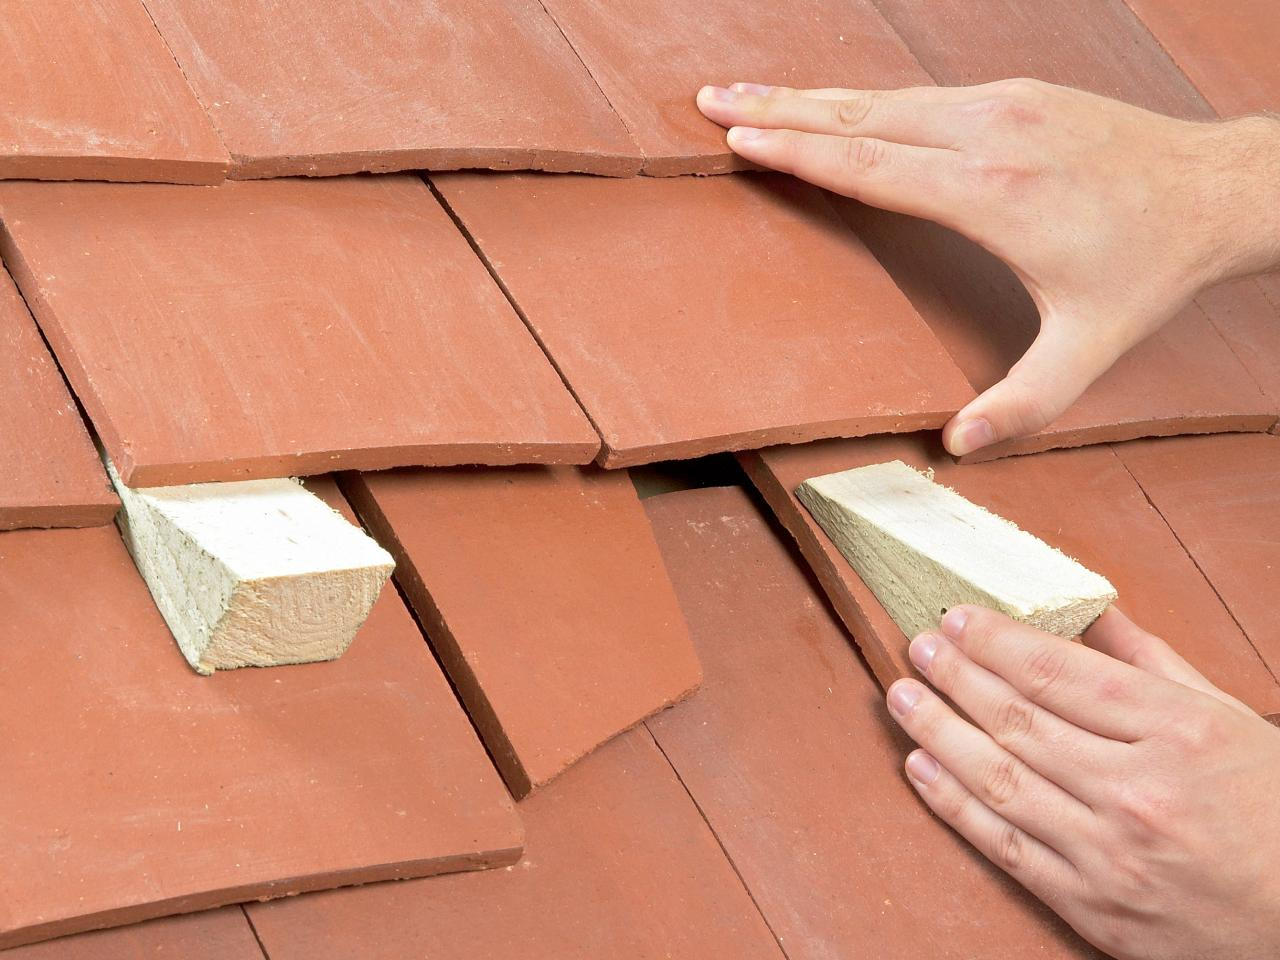 man sticking wooden blocks under roof tiles